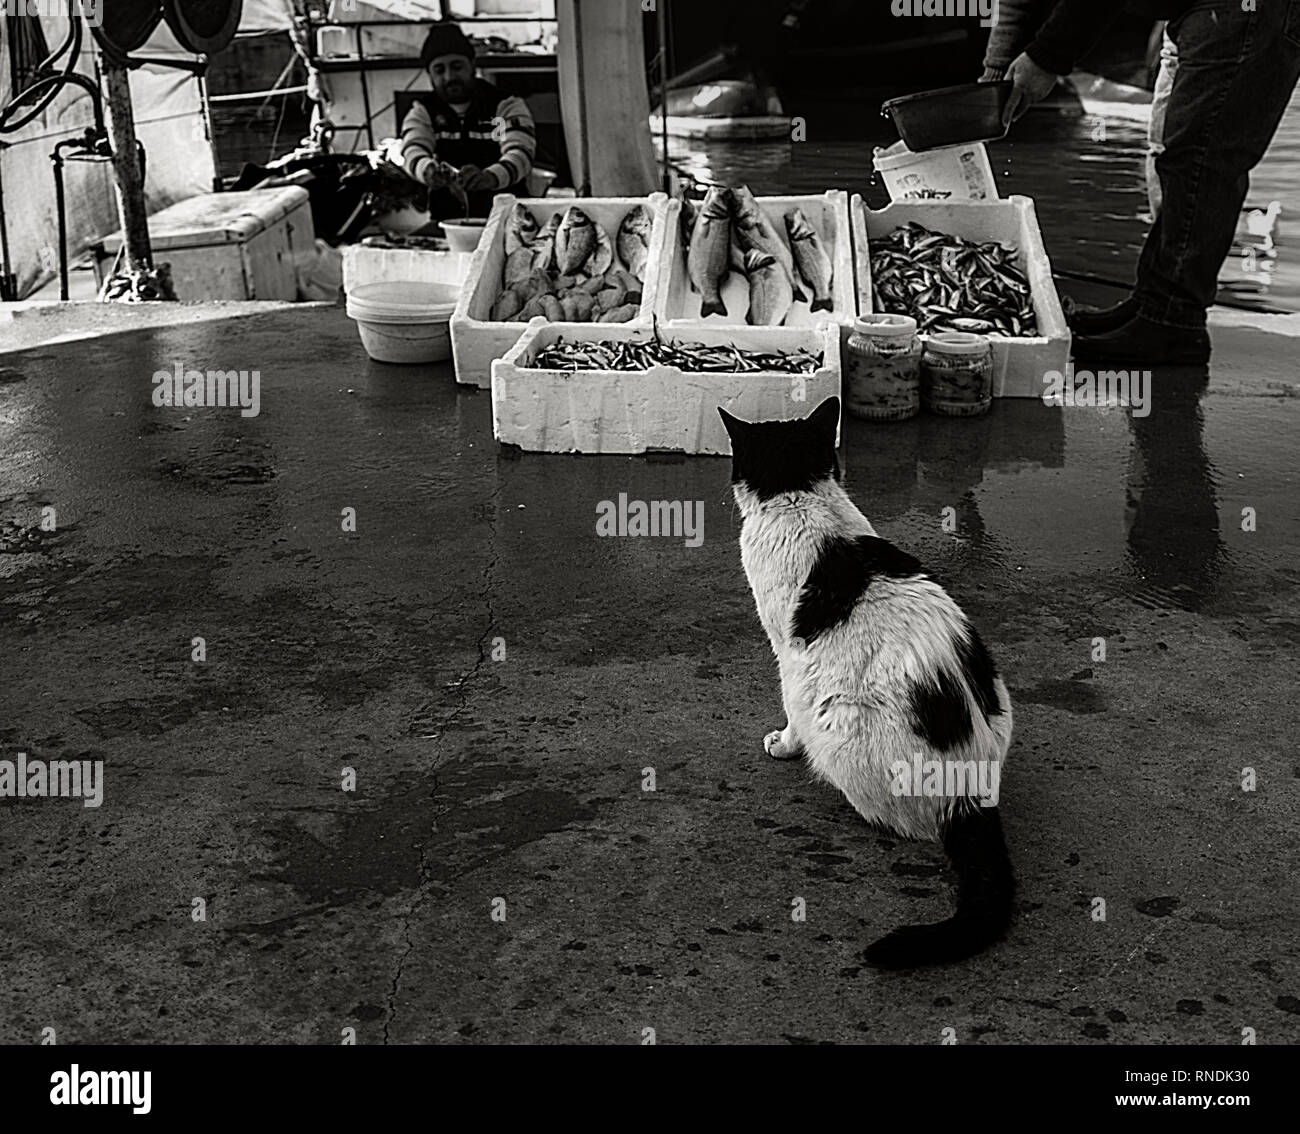 cat in front of fisherman's bench - Stock Image